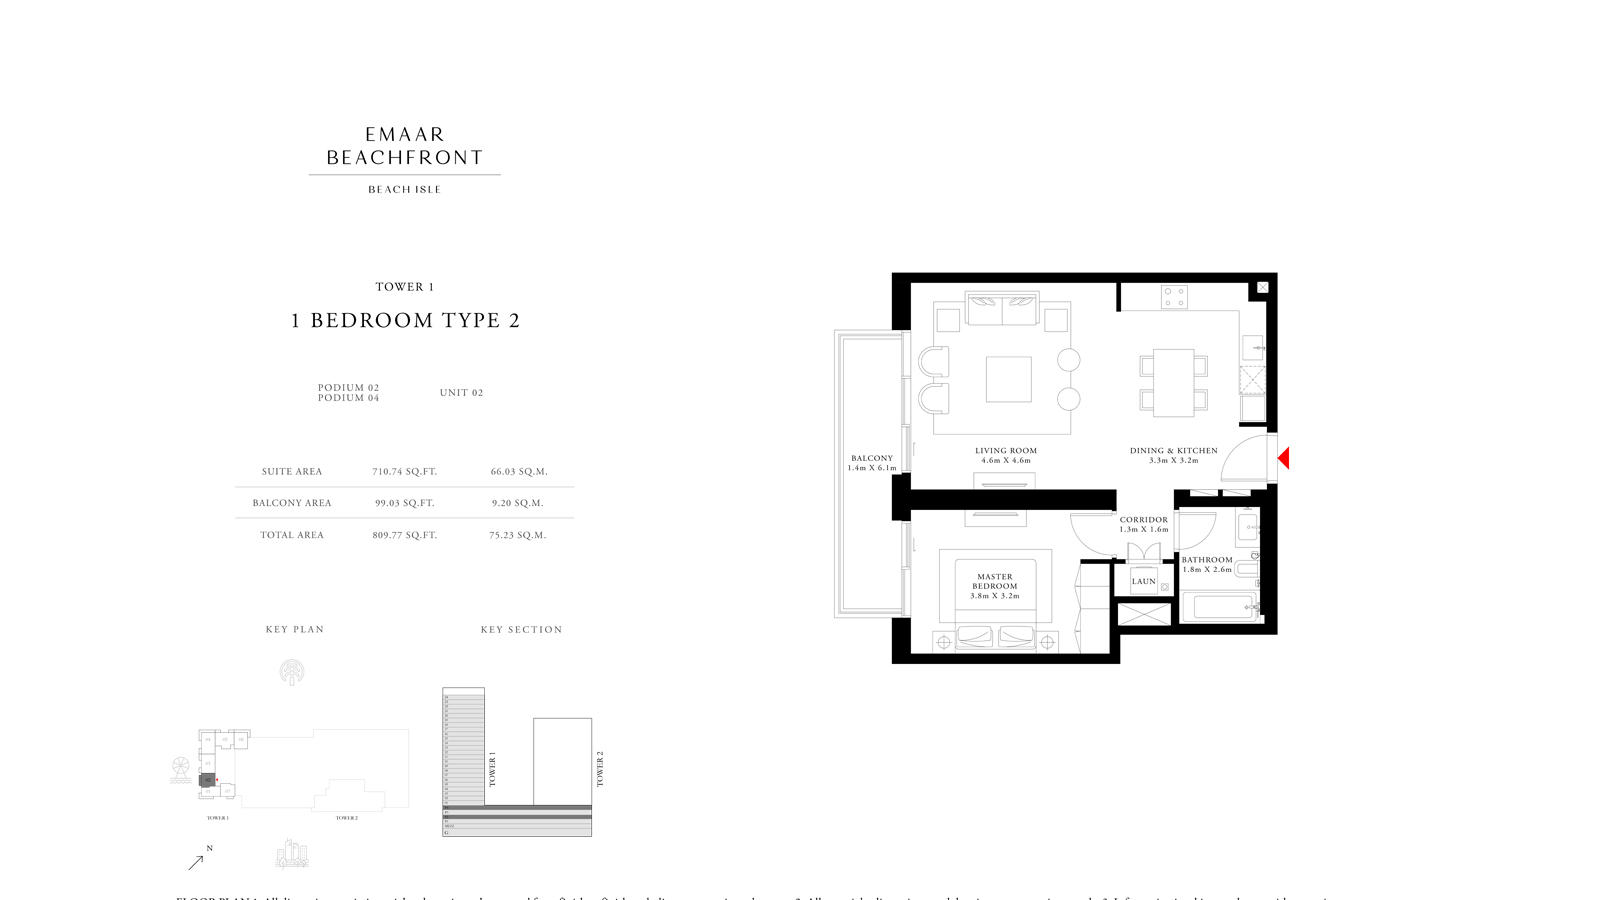 1 Bedroom Type 2 Tower 1, Size 809 sq ft